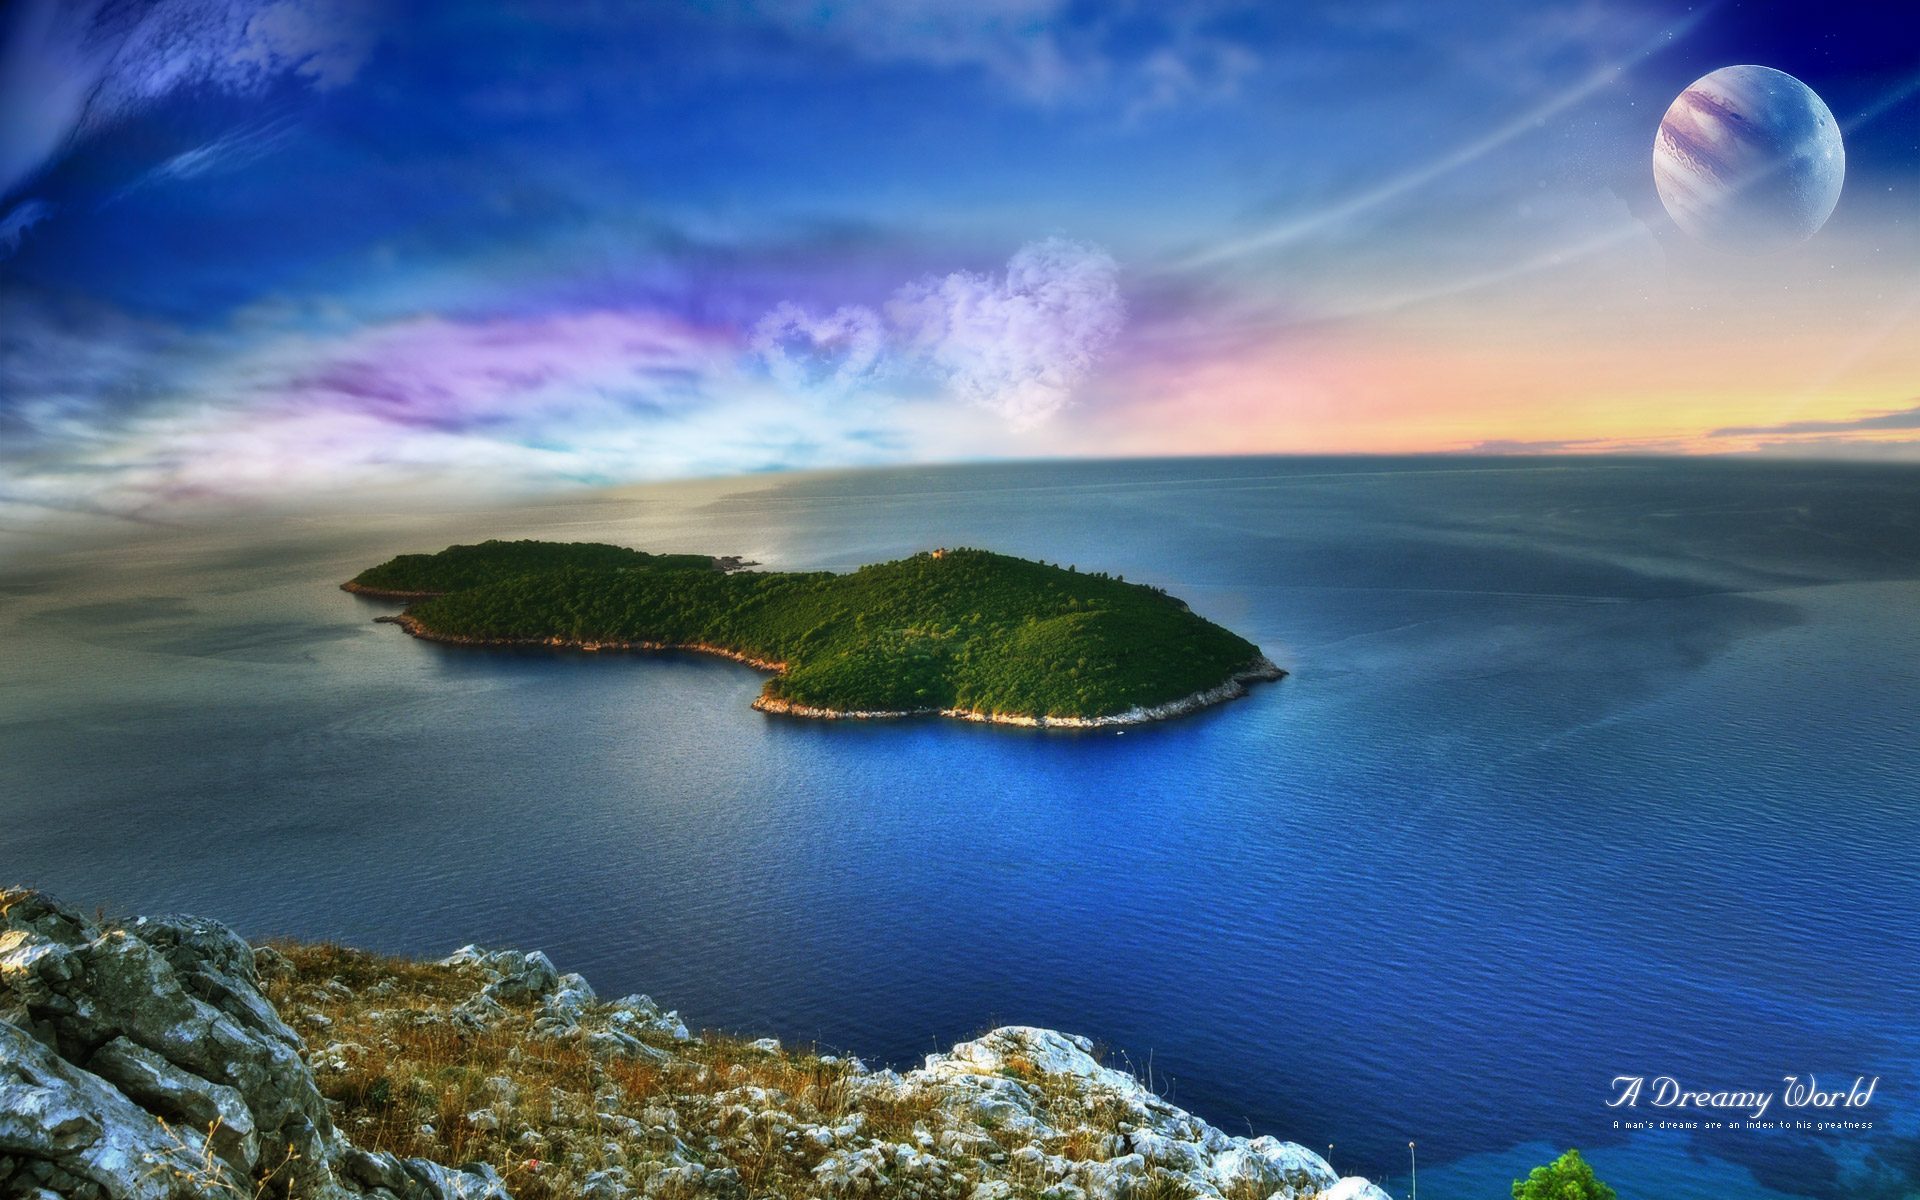 Amazing A Dreamy World Pictures & Backgrounds